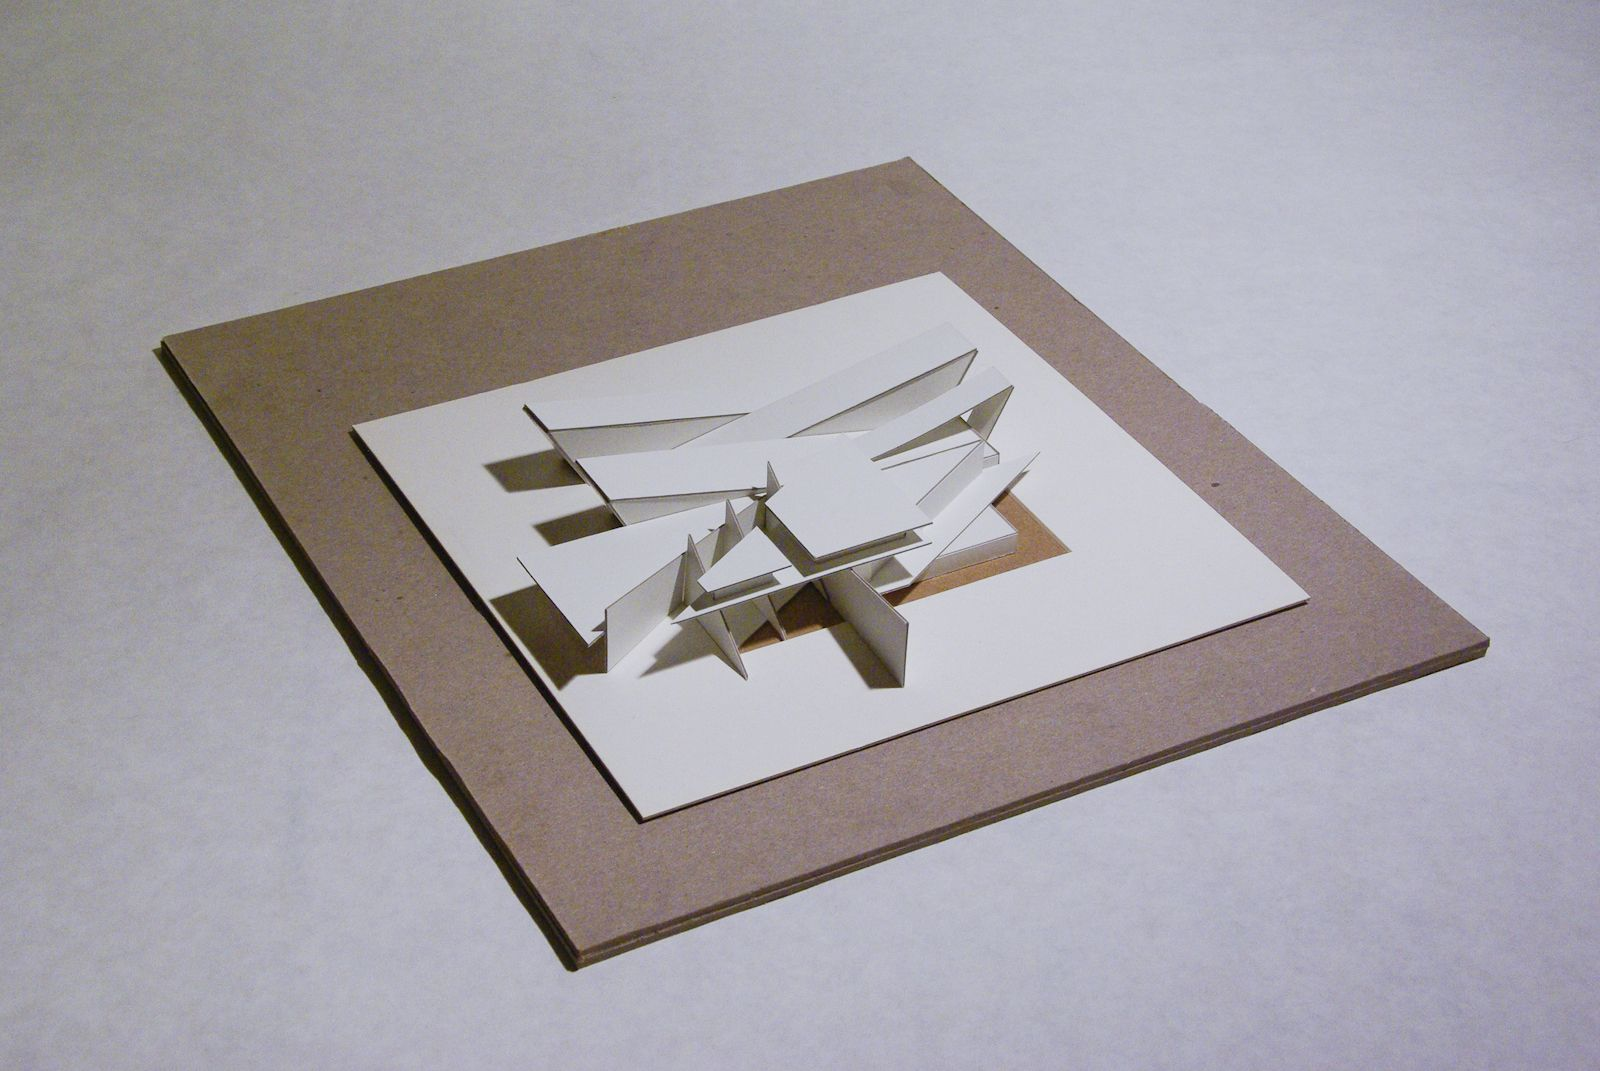 Abstract Models - Abstract architecture model